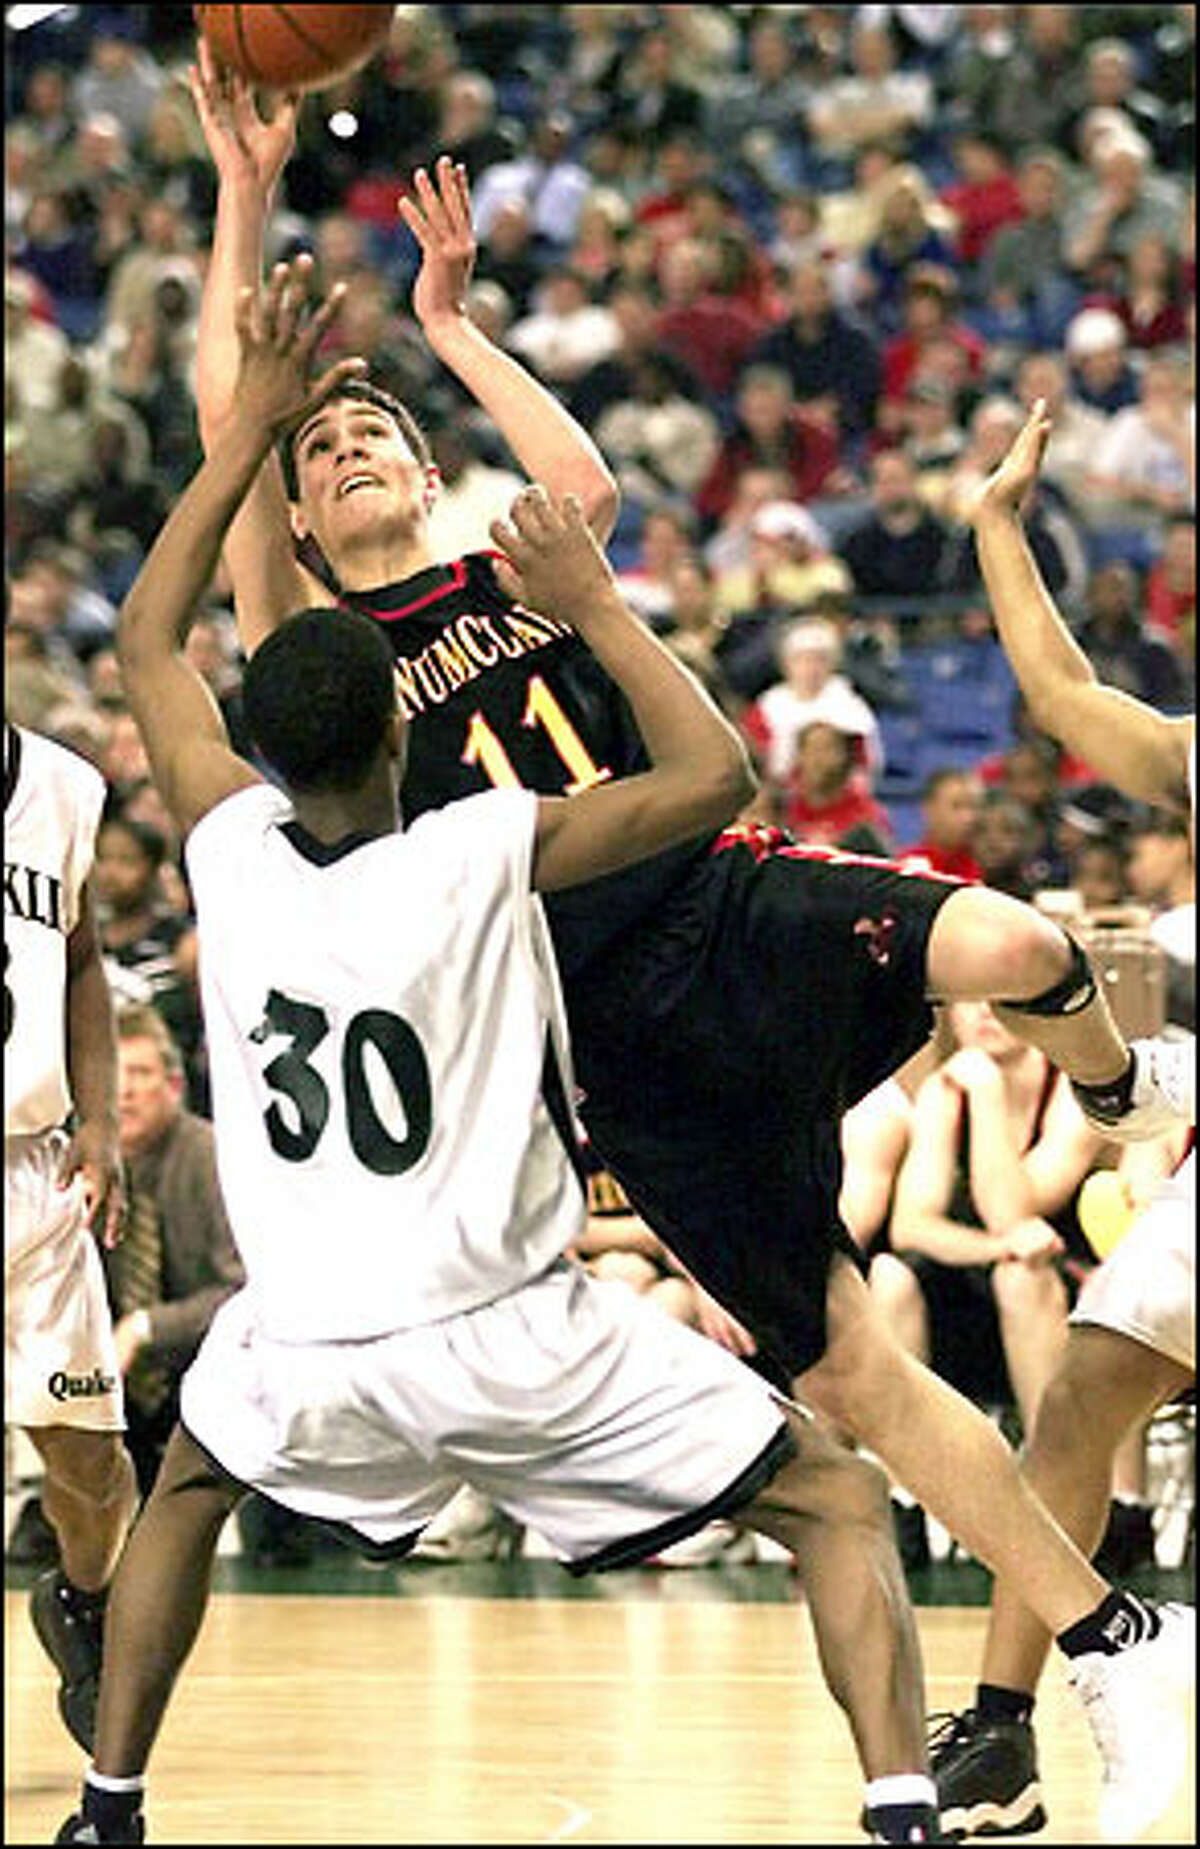 Enumclaw's Tony Binetti slams into Franklin's Aaron Brooks during the second half of their playoff game at the Tacoma Dome Thursday March 8, 2002.